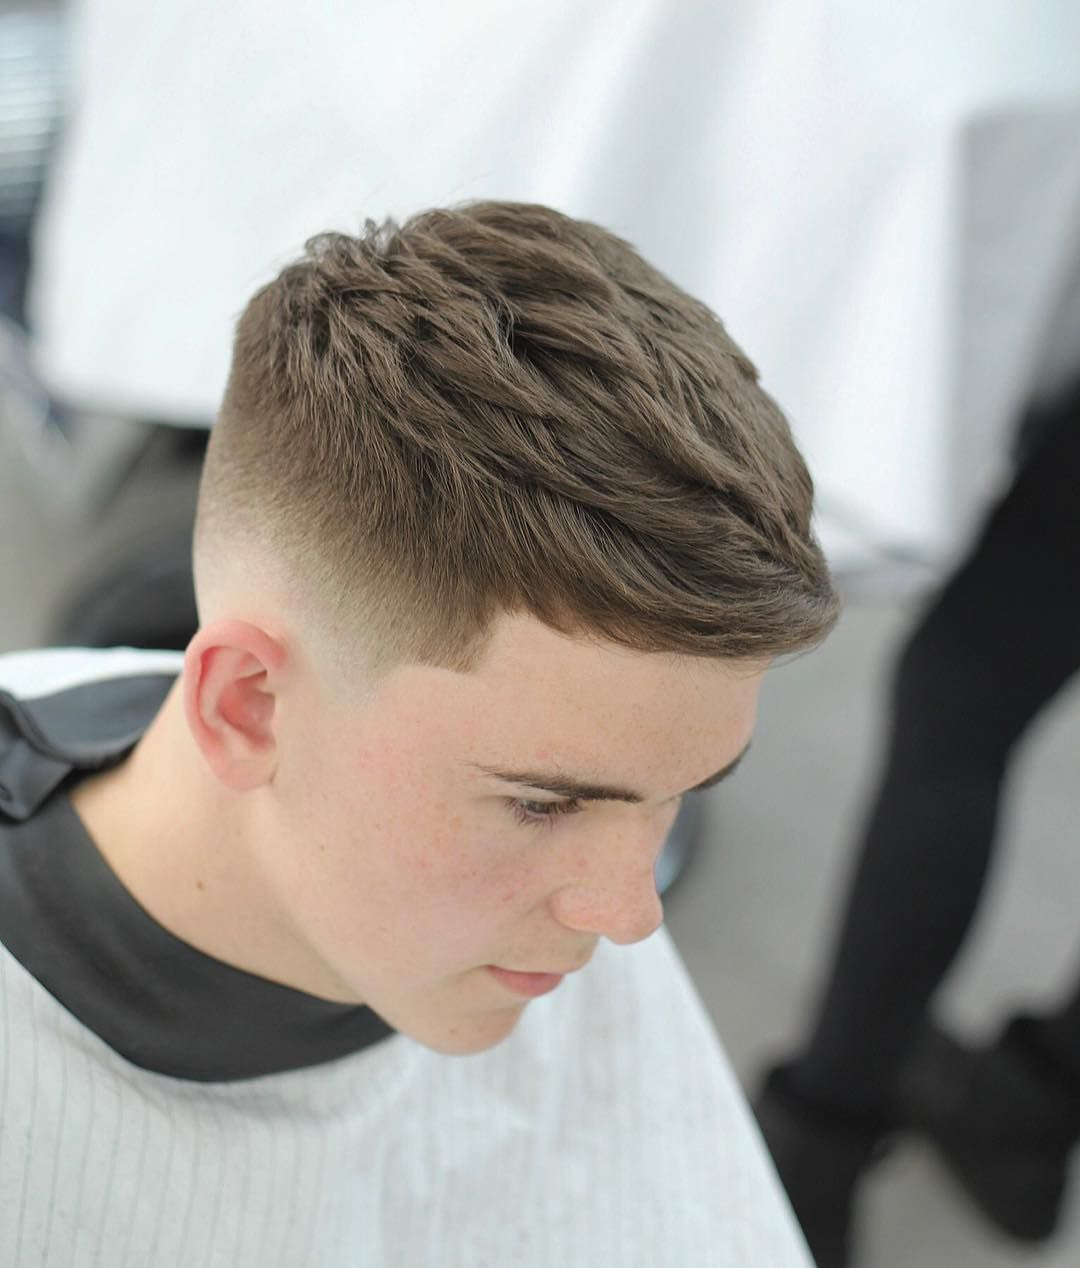 11+ Pictures of cool haircuts ideas in 2021